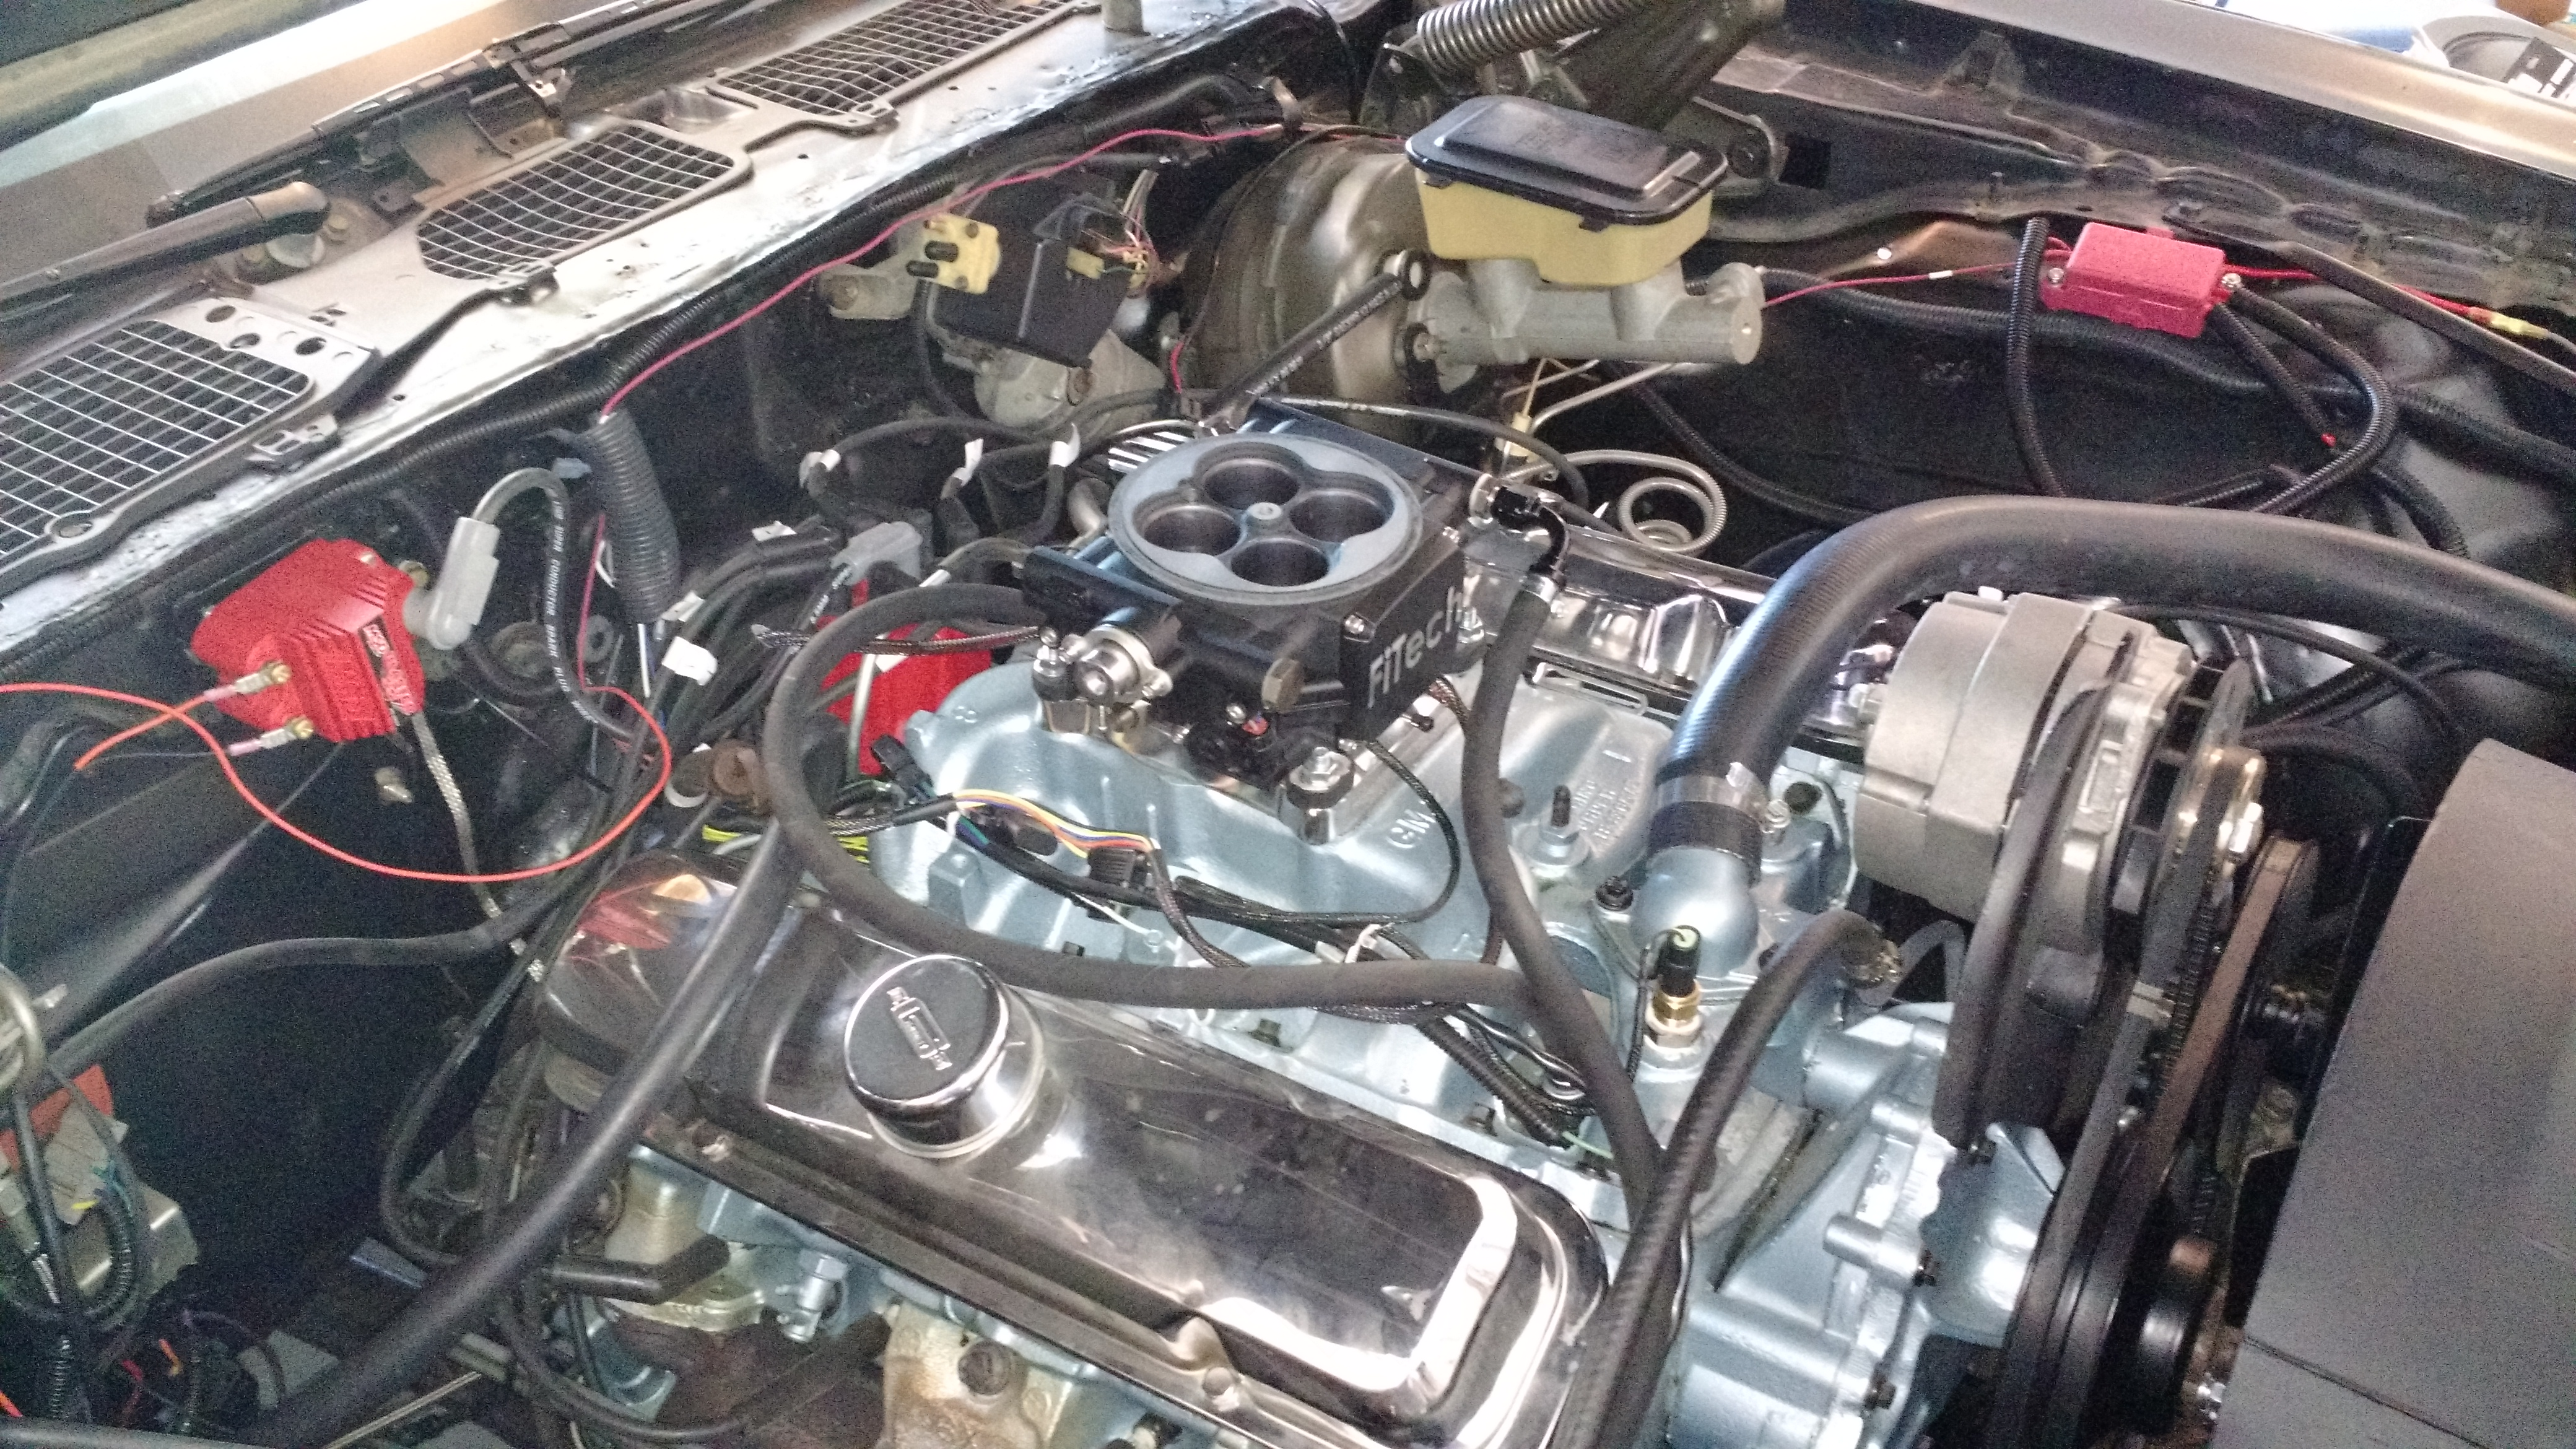 Fitech Throttle Body Go Efi 4 Installed In Project Trans Am Mods 79 403 Engine Wiring Diagram